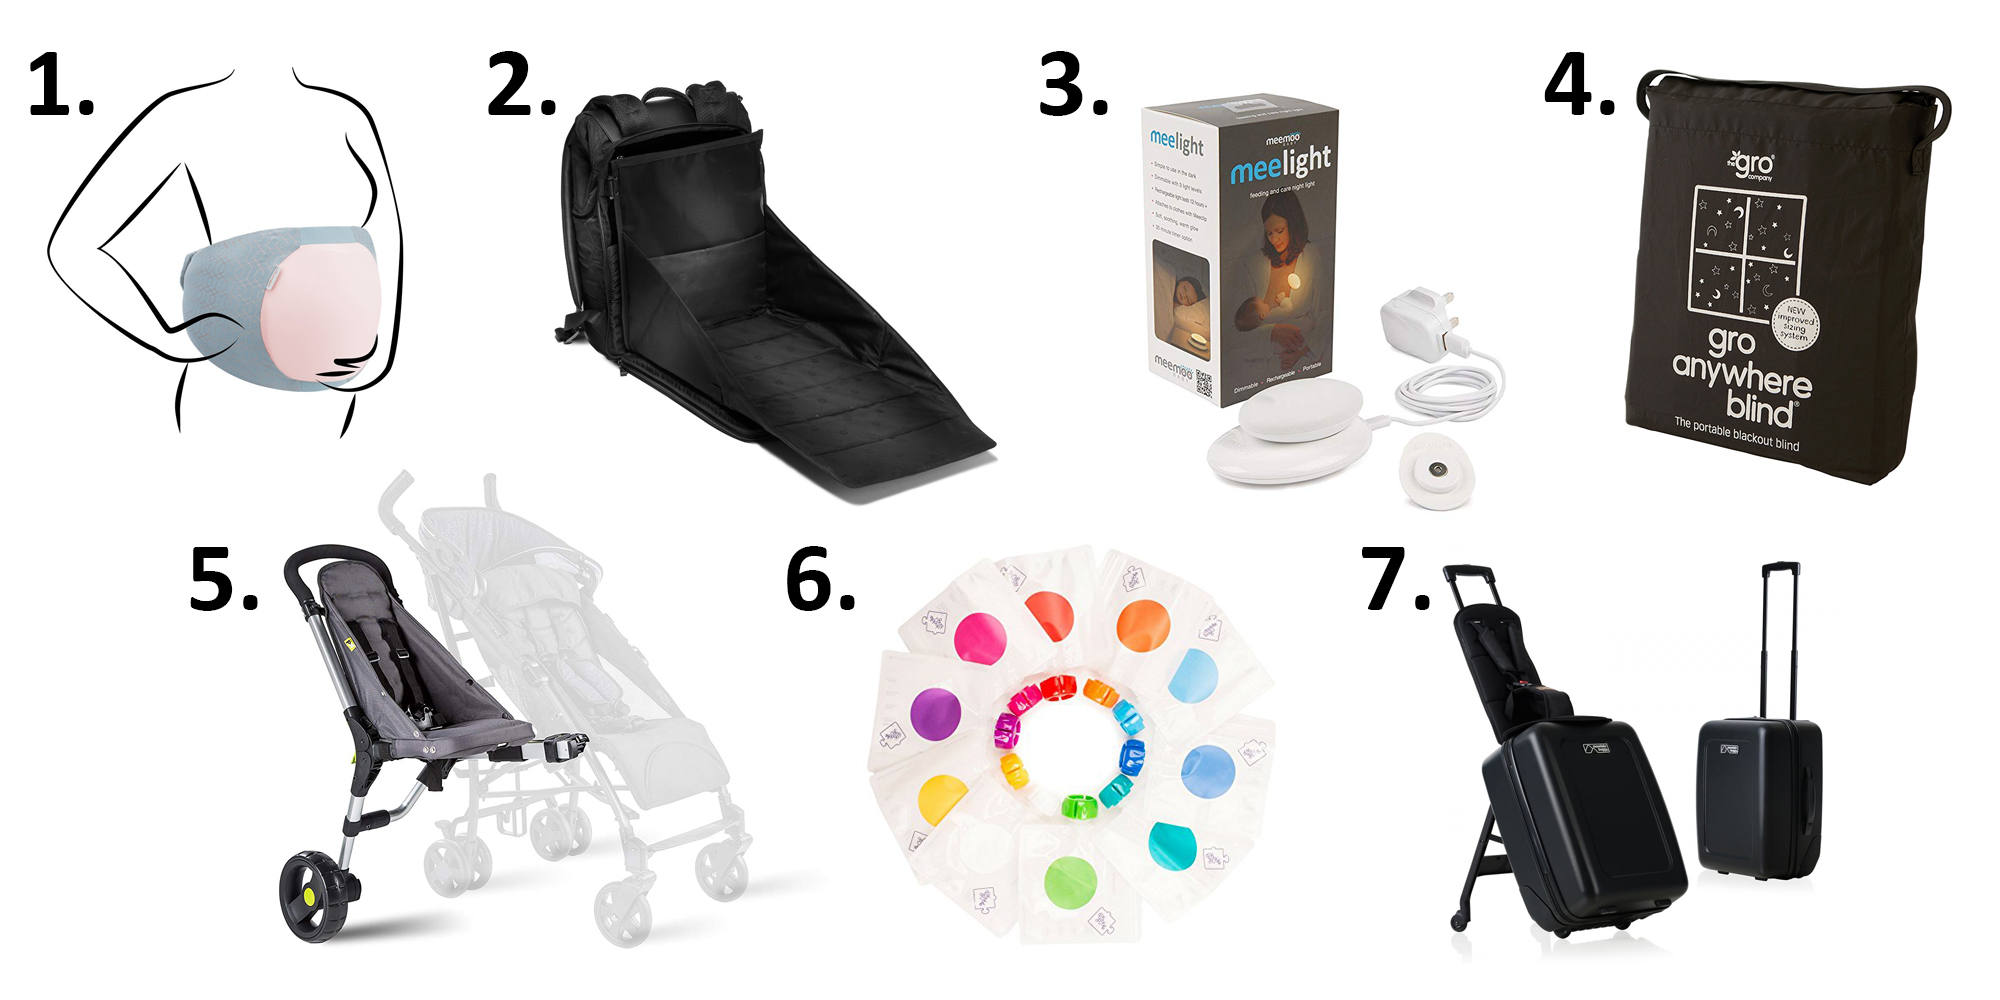 7 novelty items for easy parenting